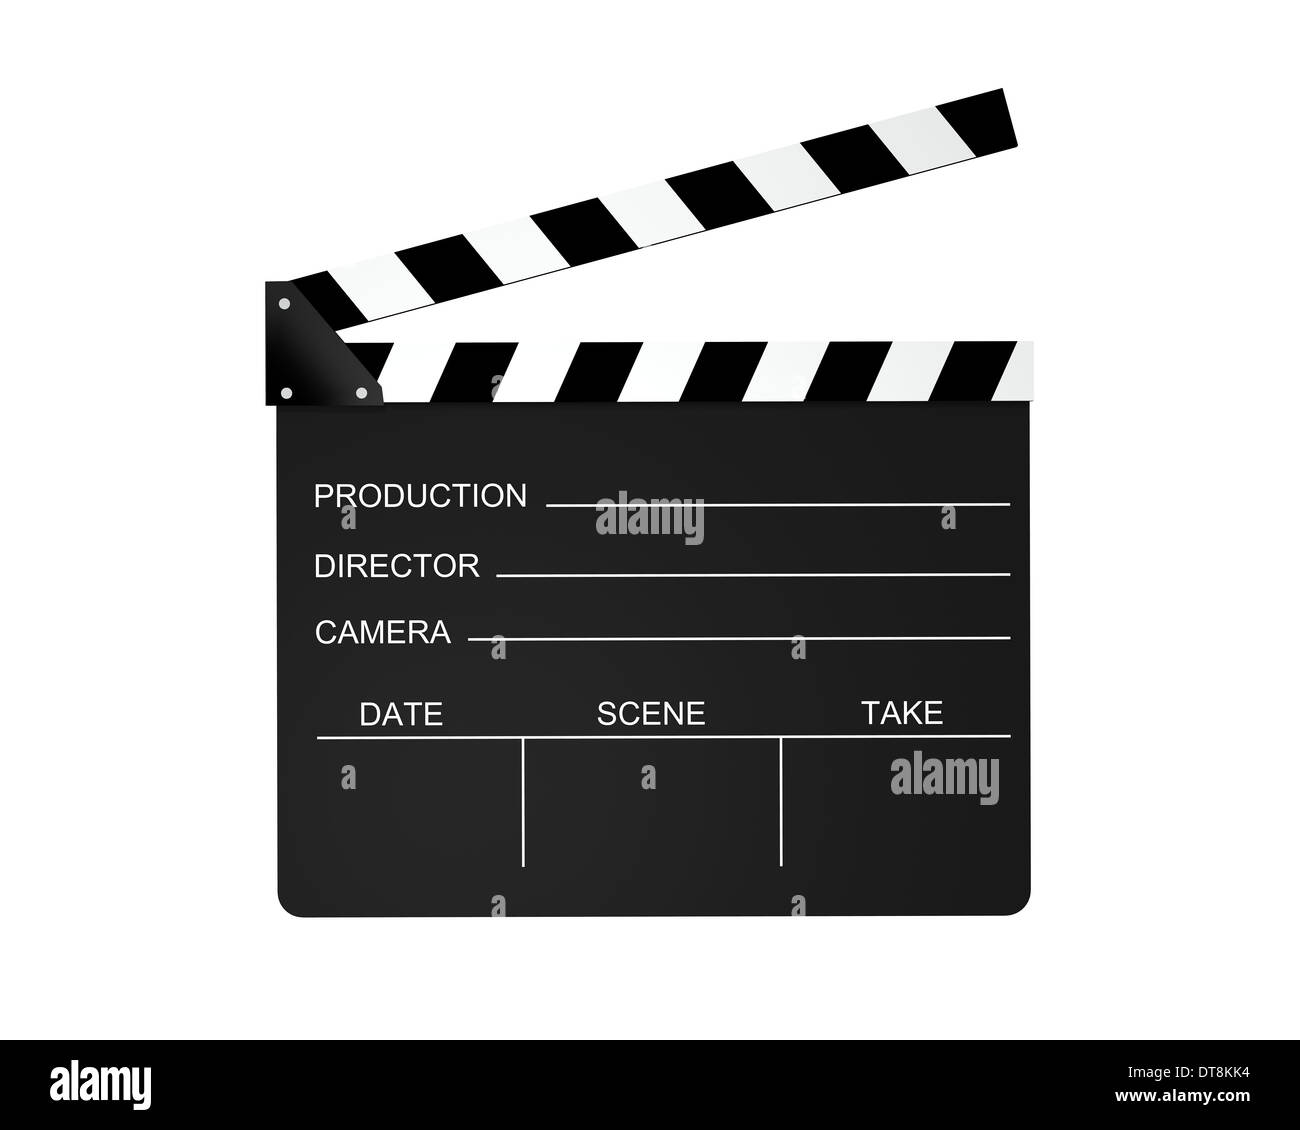 Film slate isolated on a white background. - Stock Image